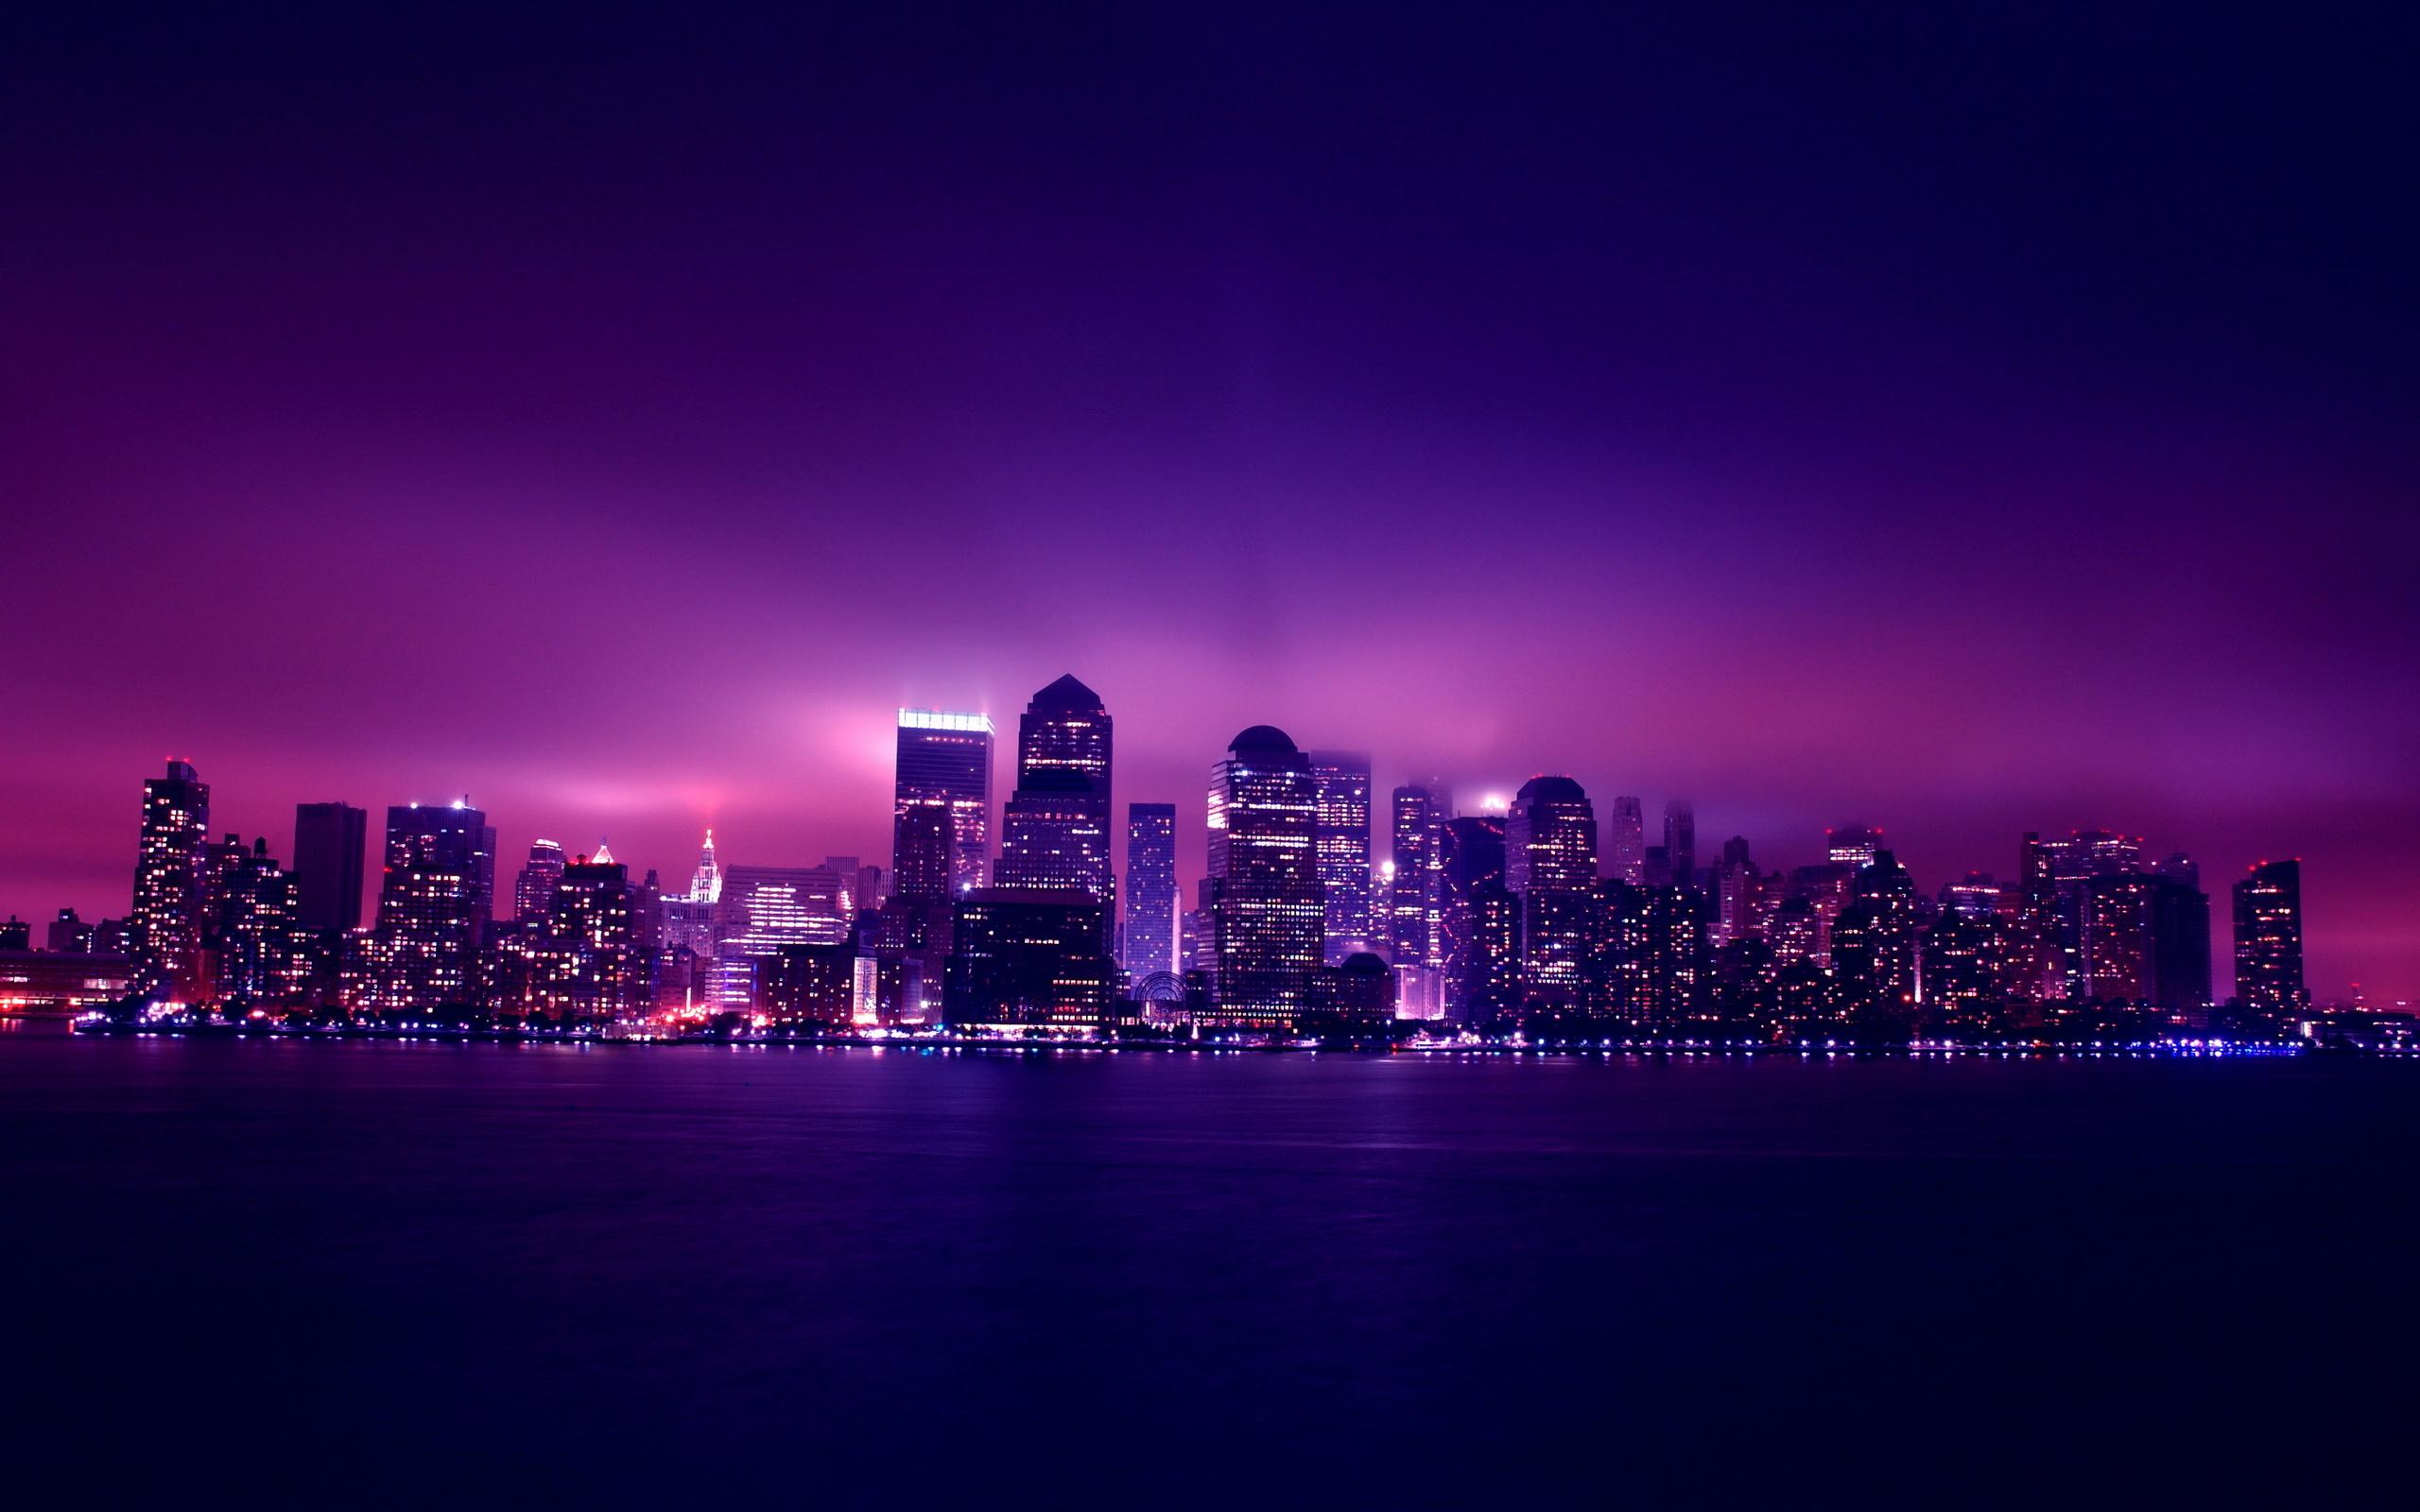 70 Night Aesthetic Desktop Wallpapers   Download at WallpaperBro 2560x1600